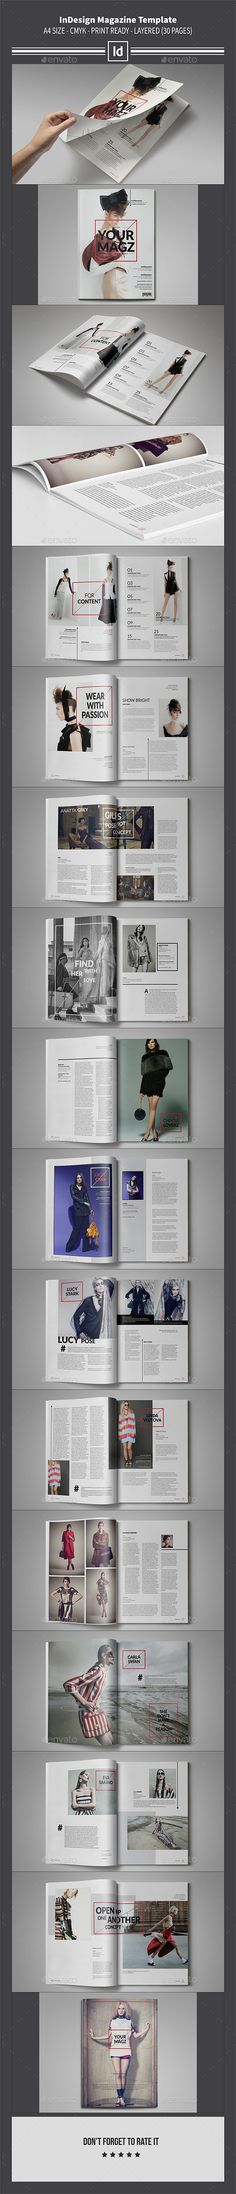 InDesign Magazine Template 30 Pages | Download: http://graphicriver.net/item/indesign-magazine-template-30-pages/9993931?ref=ksioks